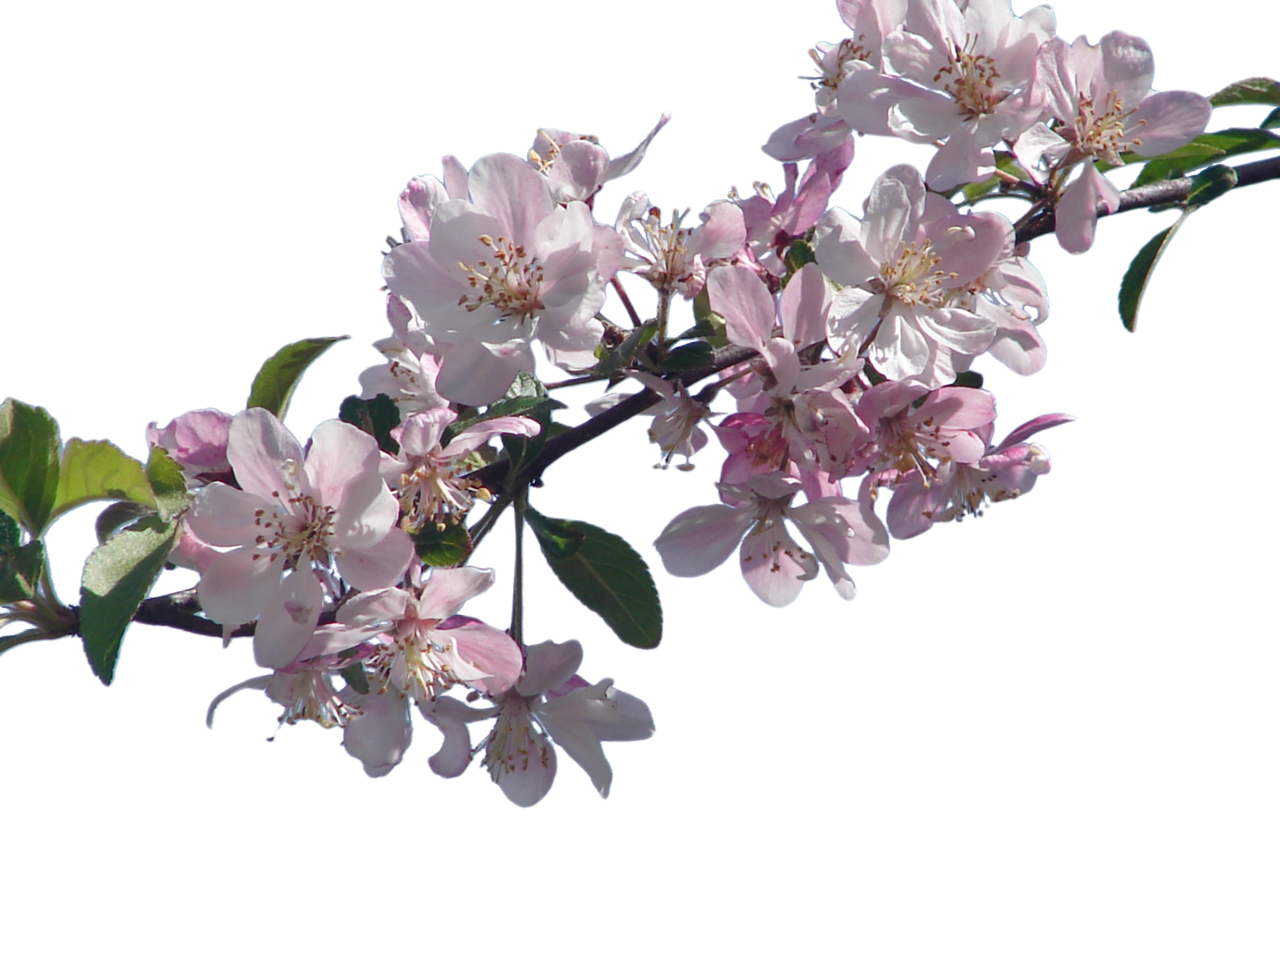 Flower trees png. Cherry blossom branch by